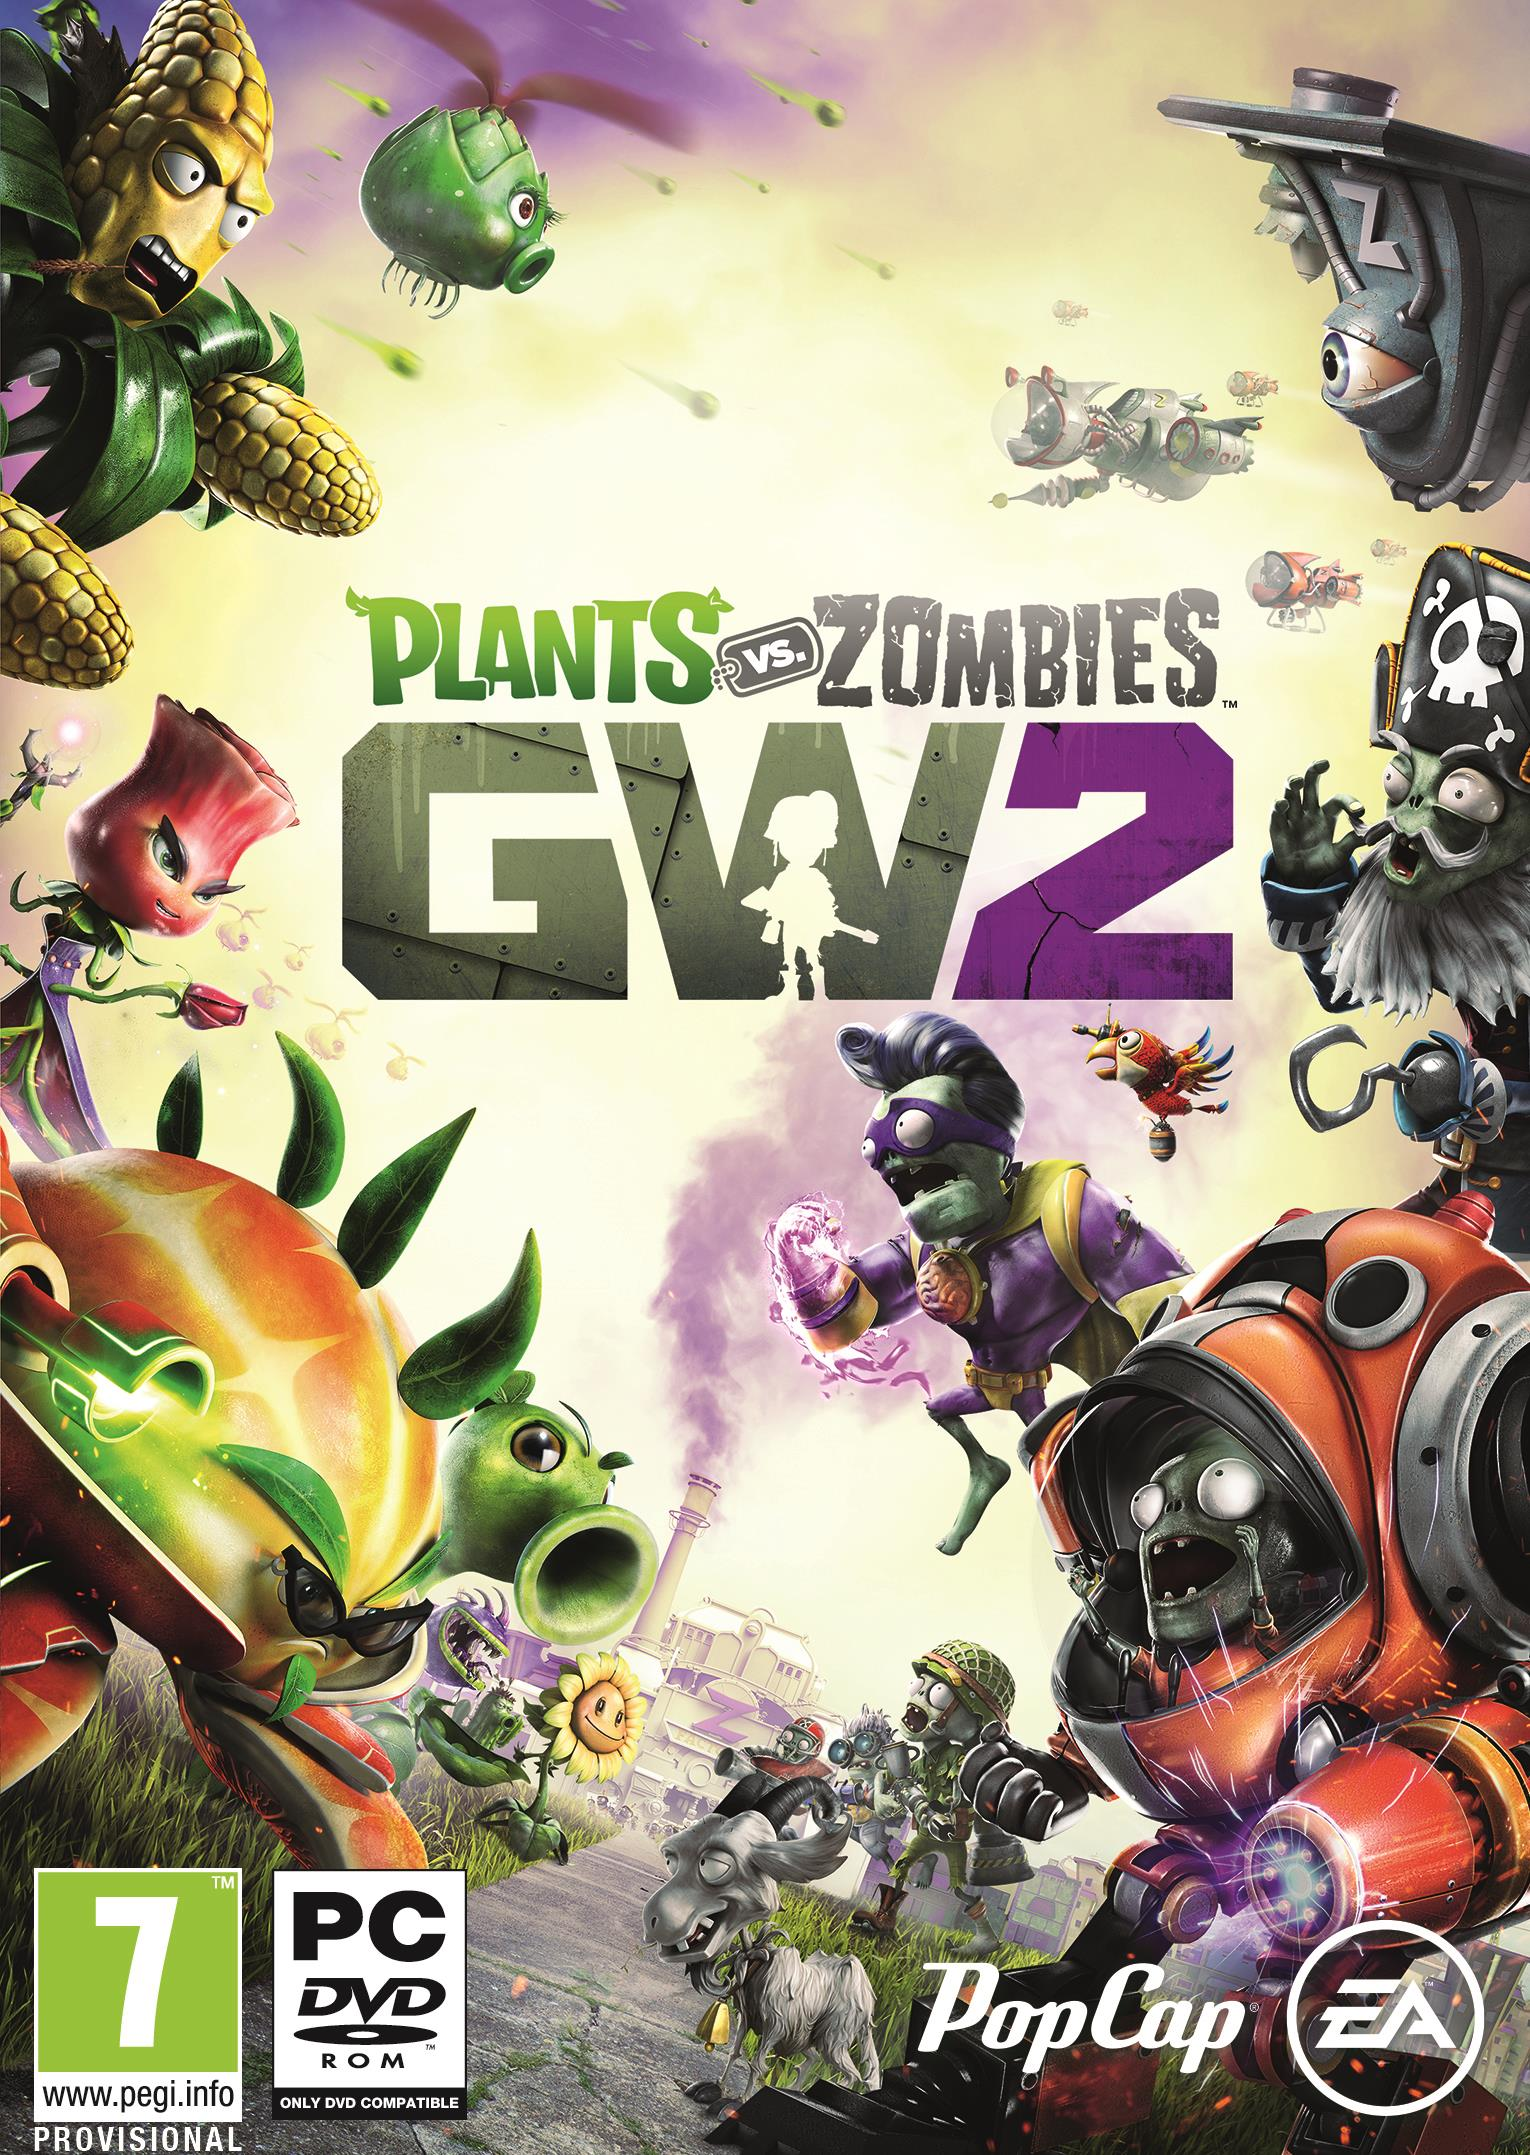 Plants vs zombies 2 release date in Perth